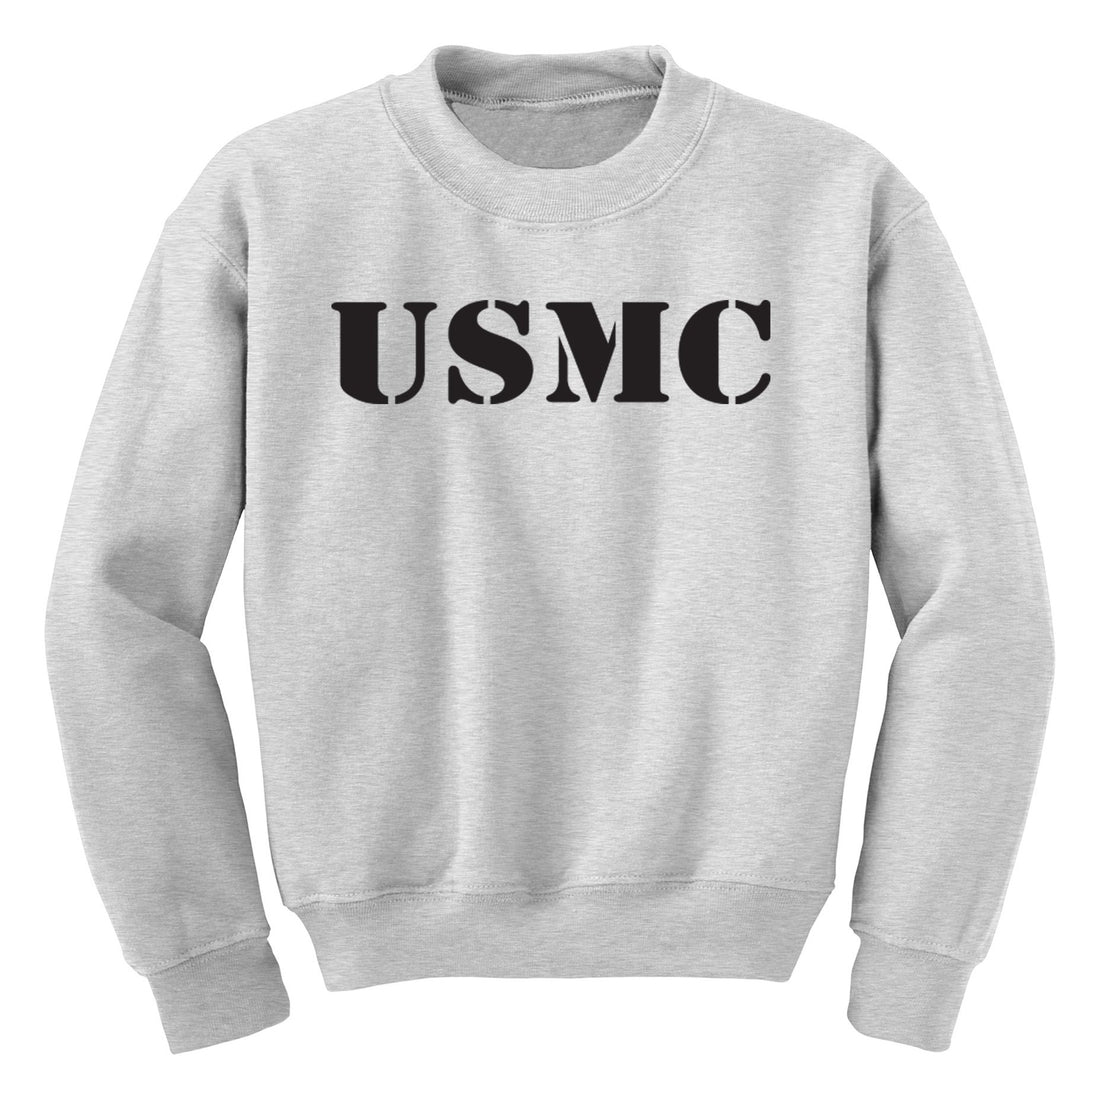 USMC YOUTH SPORT GRAY SWEATSHIRT